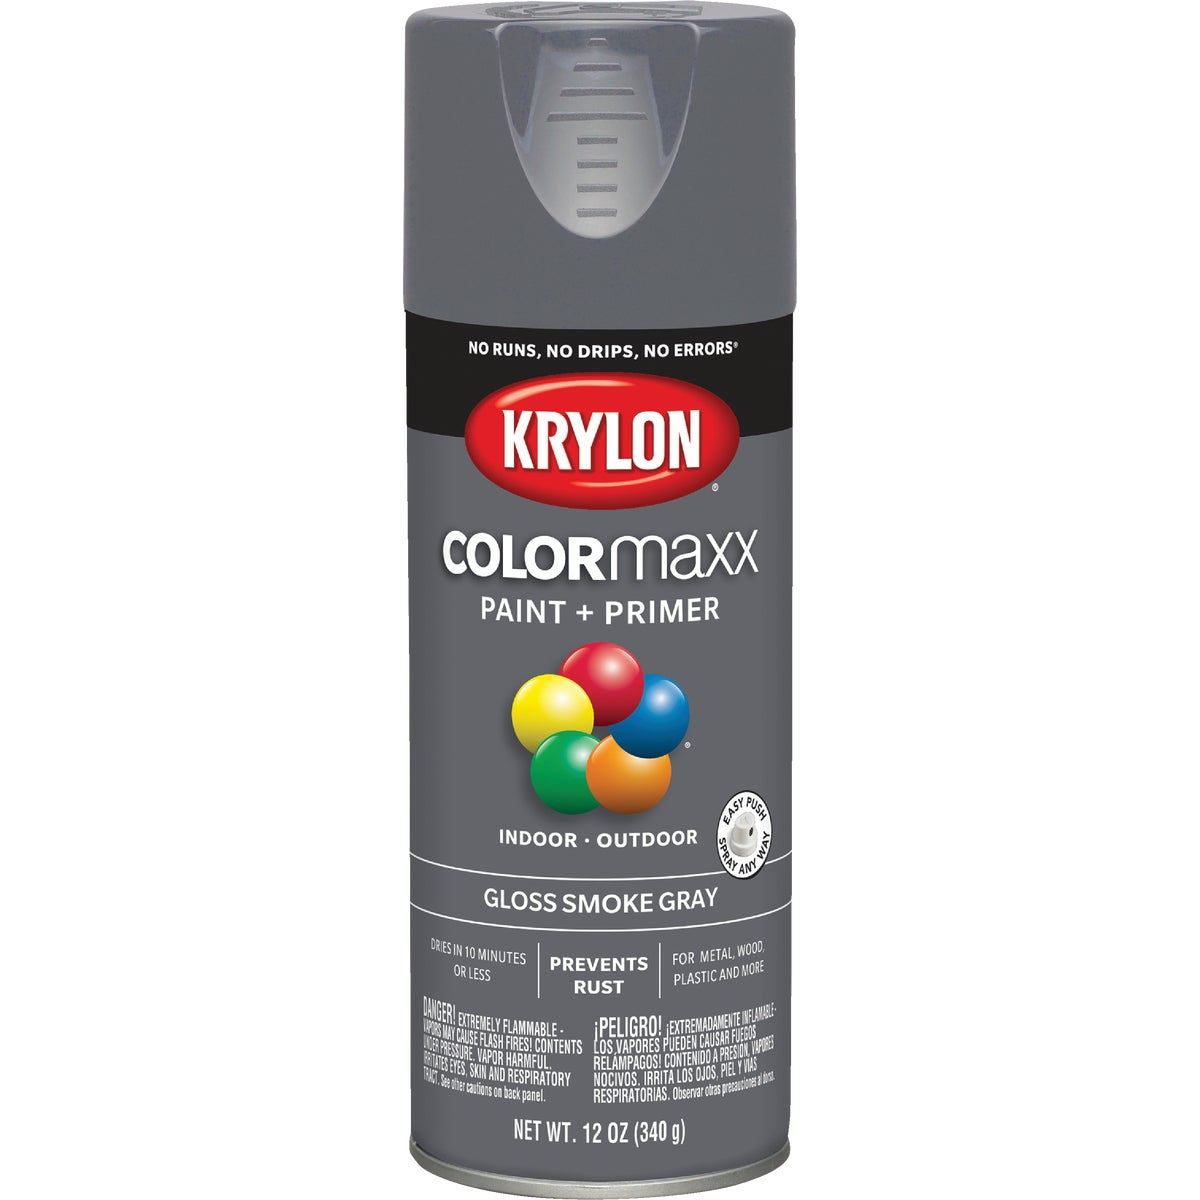 GLS SMK GRAY SPRAY PAINT - 51608 by Krylon/consumer Div